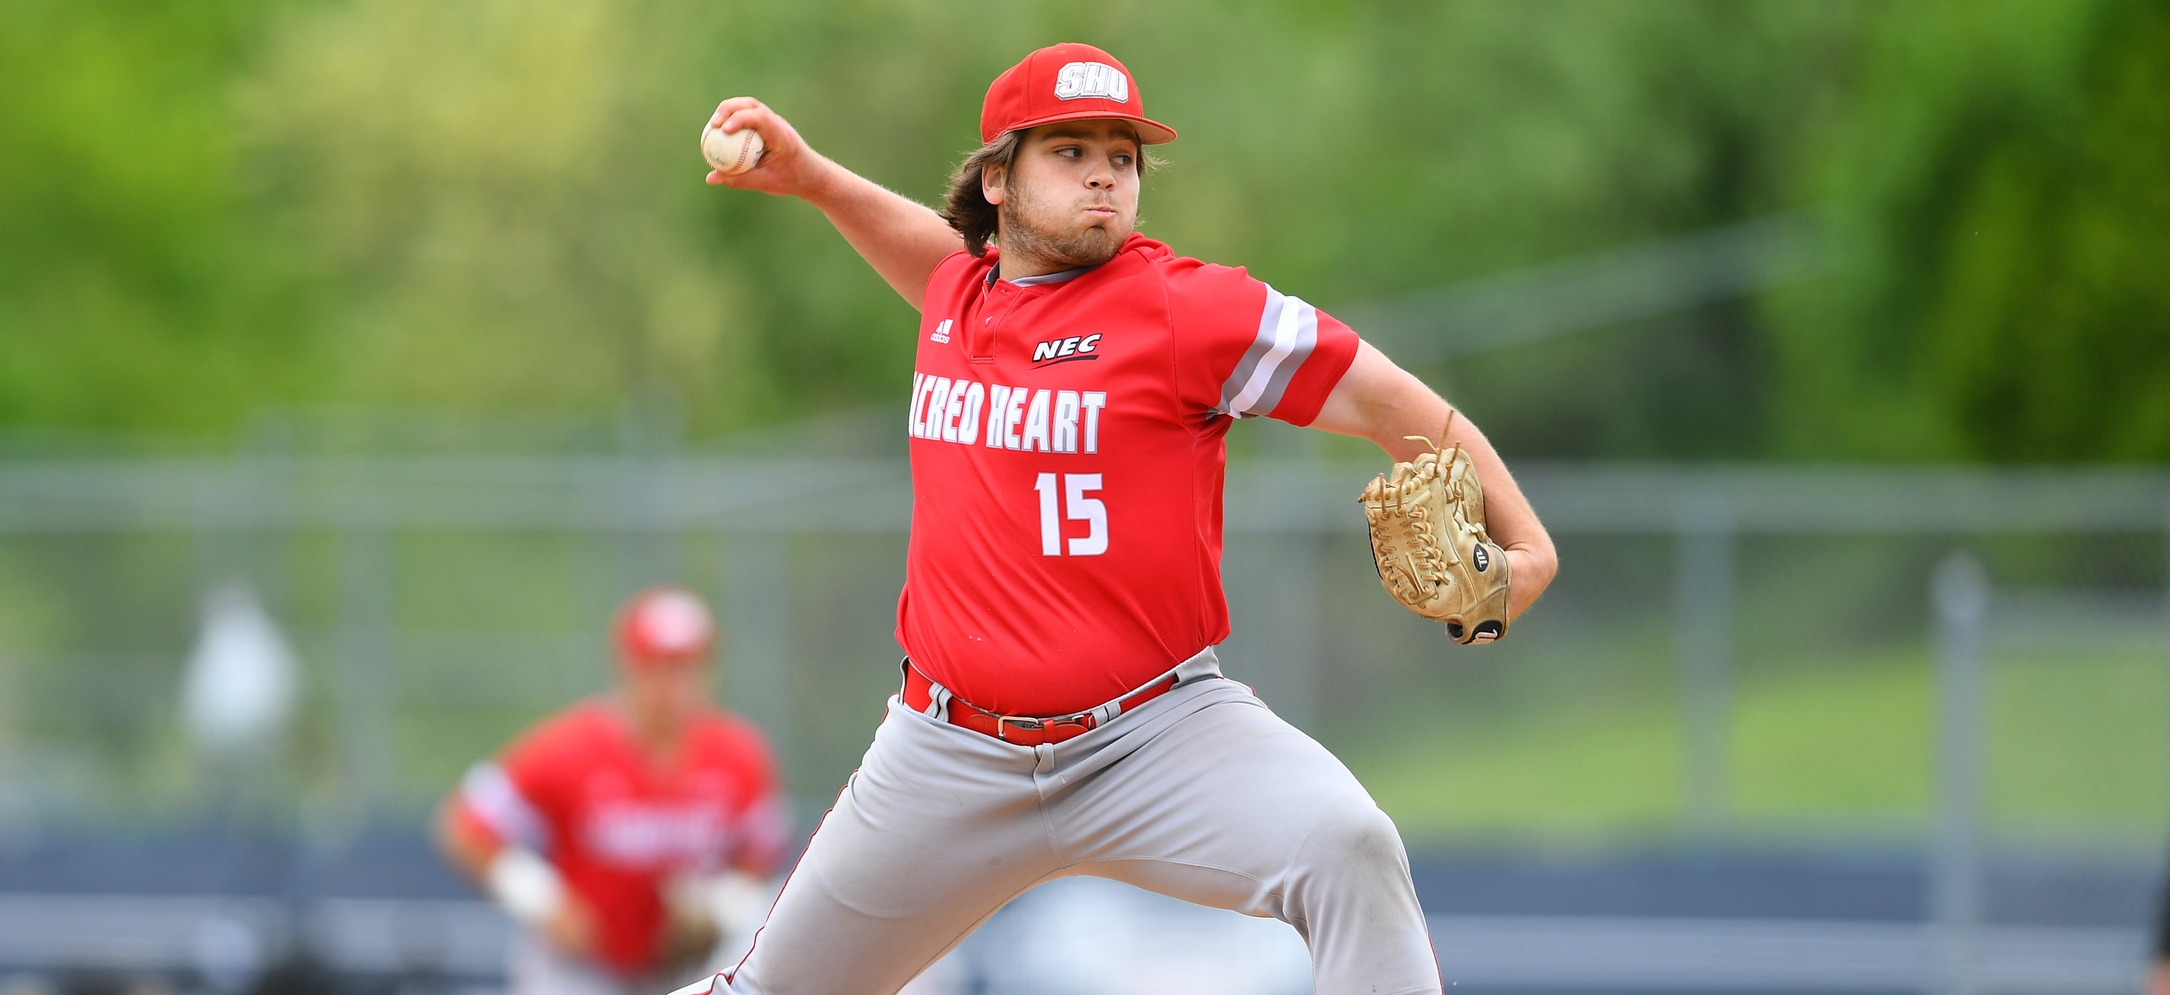 Matt Aufiero picked up his second win of the year, with 2.0 scoreless innings of relief versus Ball State on Friday. (Credit: Steve McLaughlin)